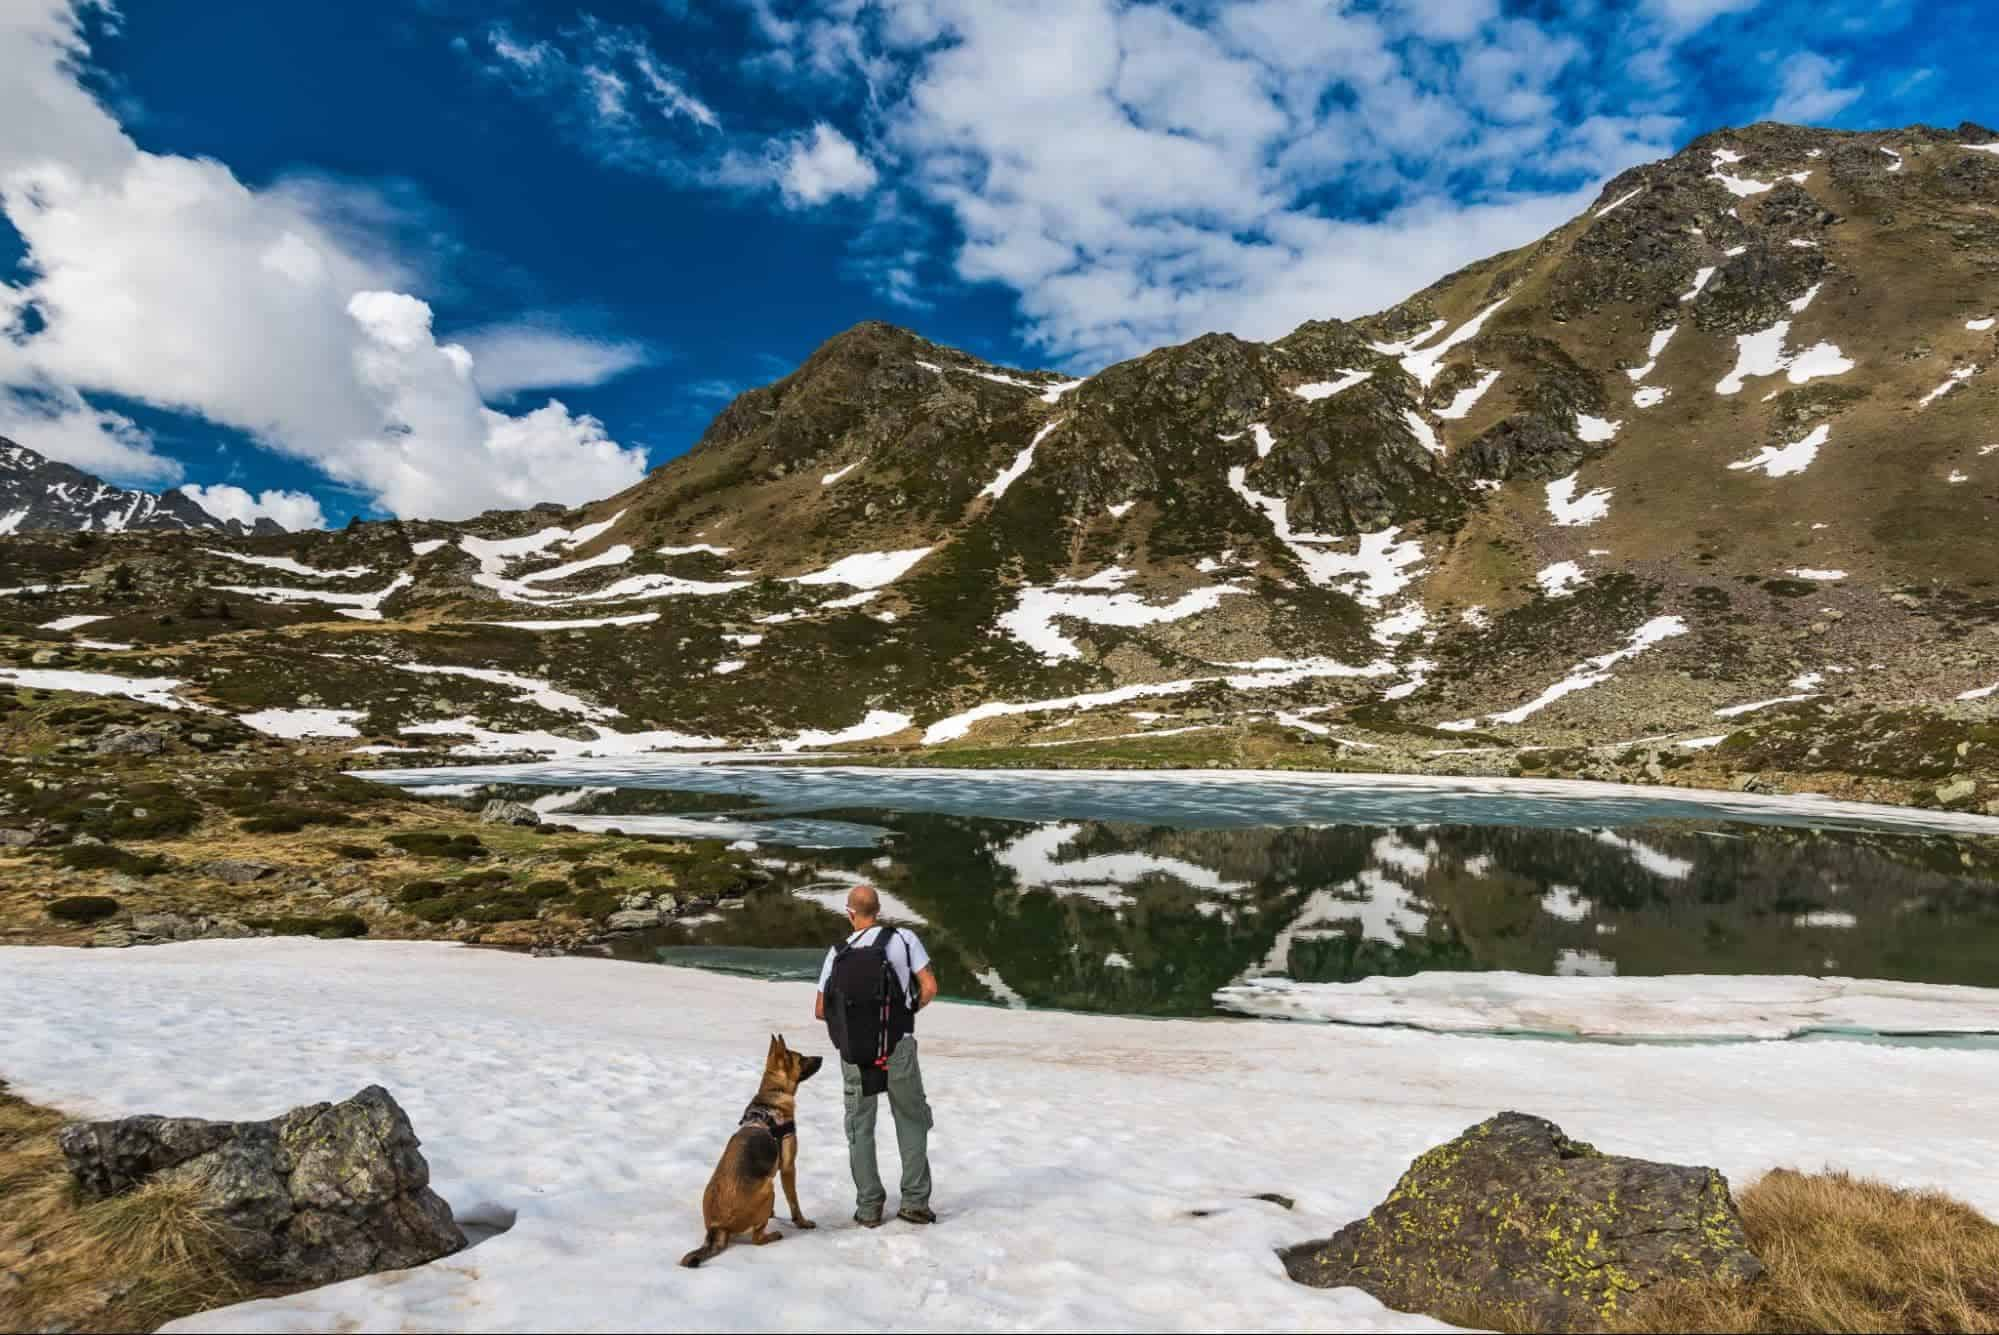 Things You Need To Know Before Hiking with Your Dogs